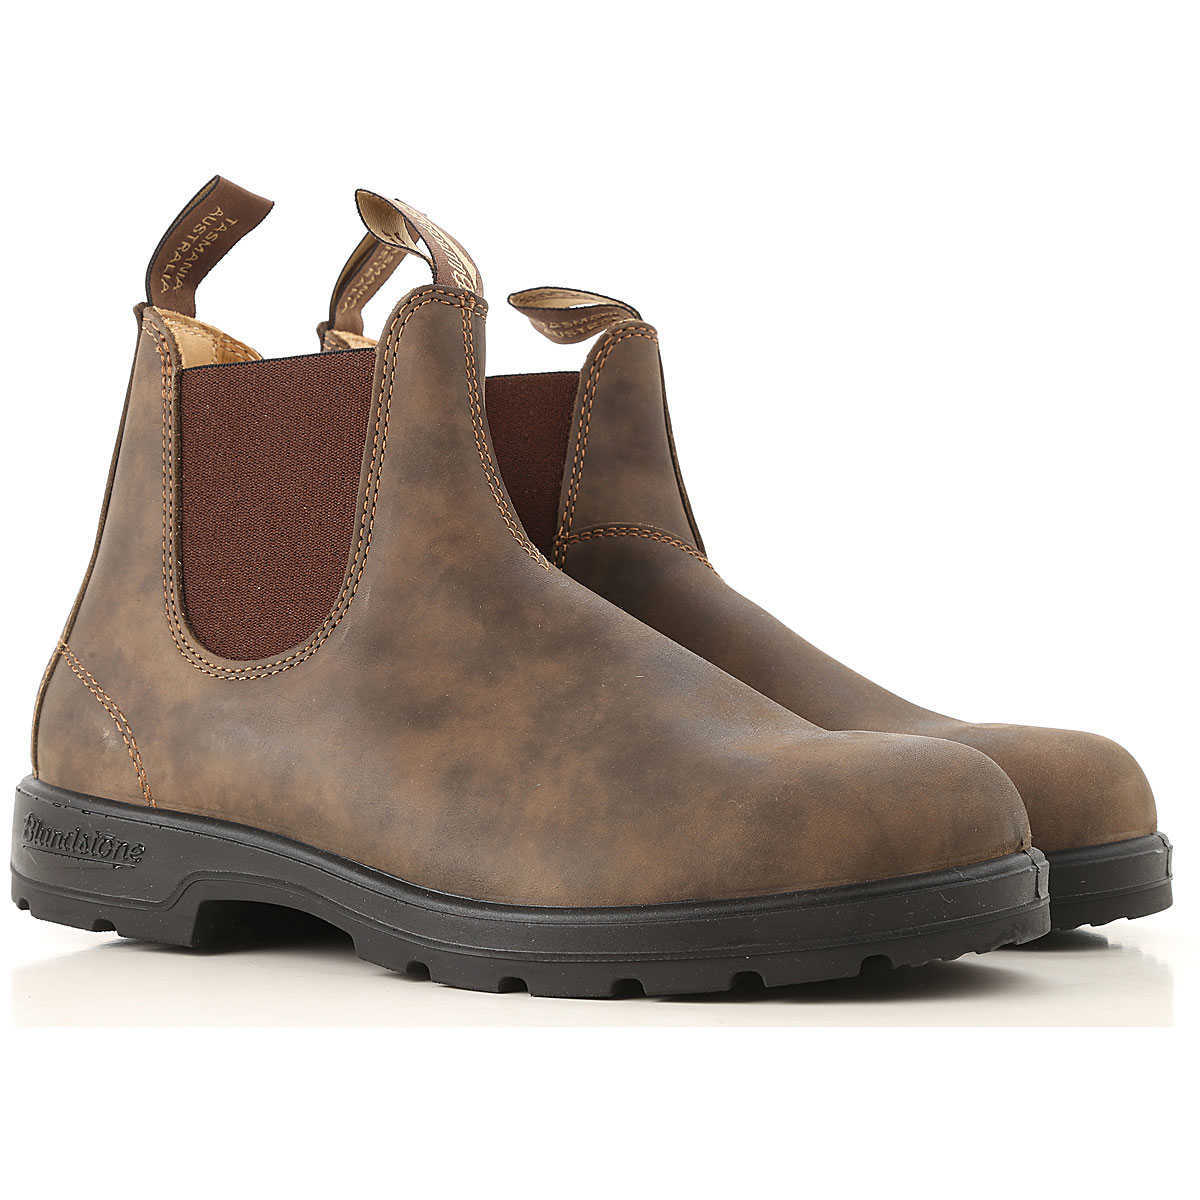 Blundstone Boots for Men Booties On Sale SE - GOOFASH